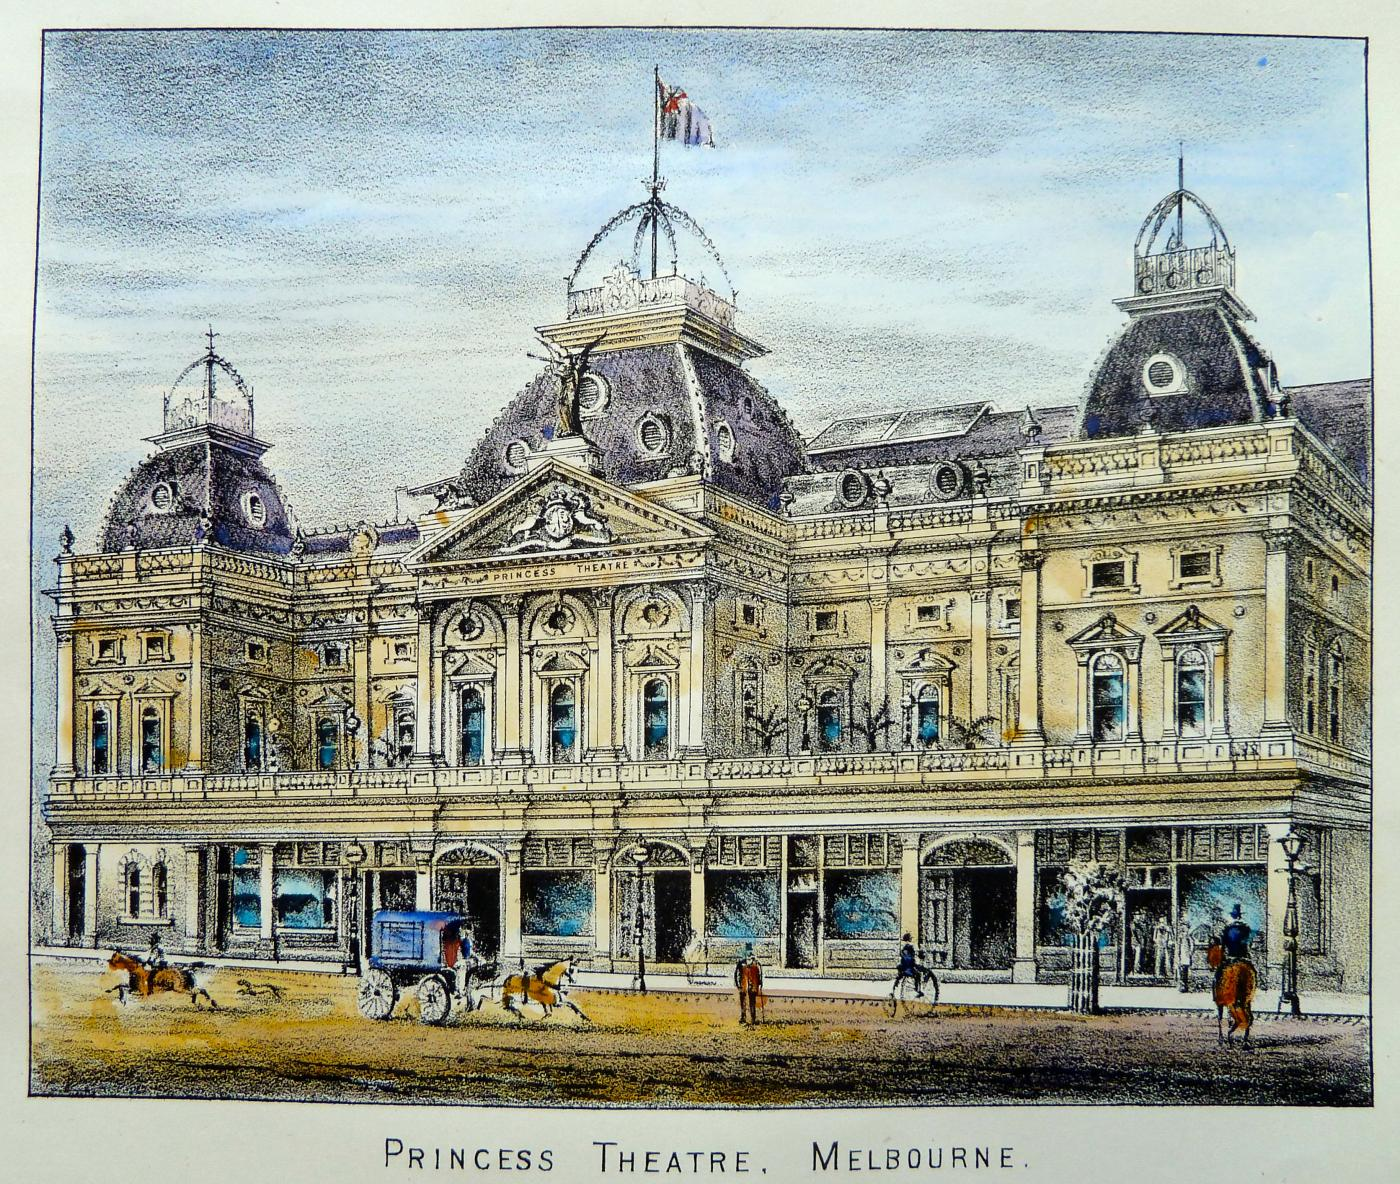 The Princess Theatre in 1875. Unknown artist. View from Melbourne over the Yarra Melbourne watercolour by Henry Easom Davies c1864. On display in the 'Paintings of Early Melbourne' tour of Old Treasury Building.